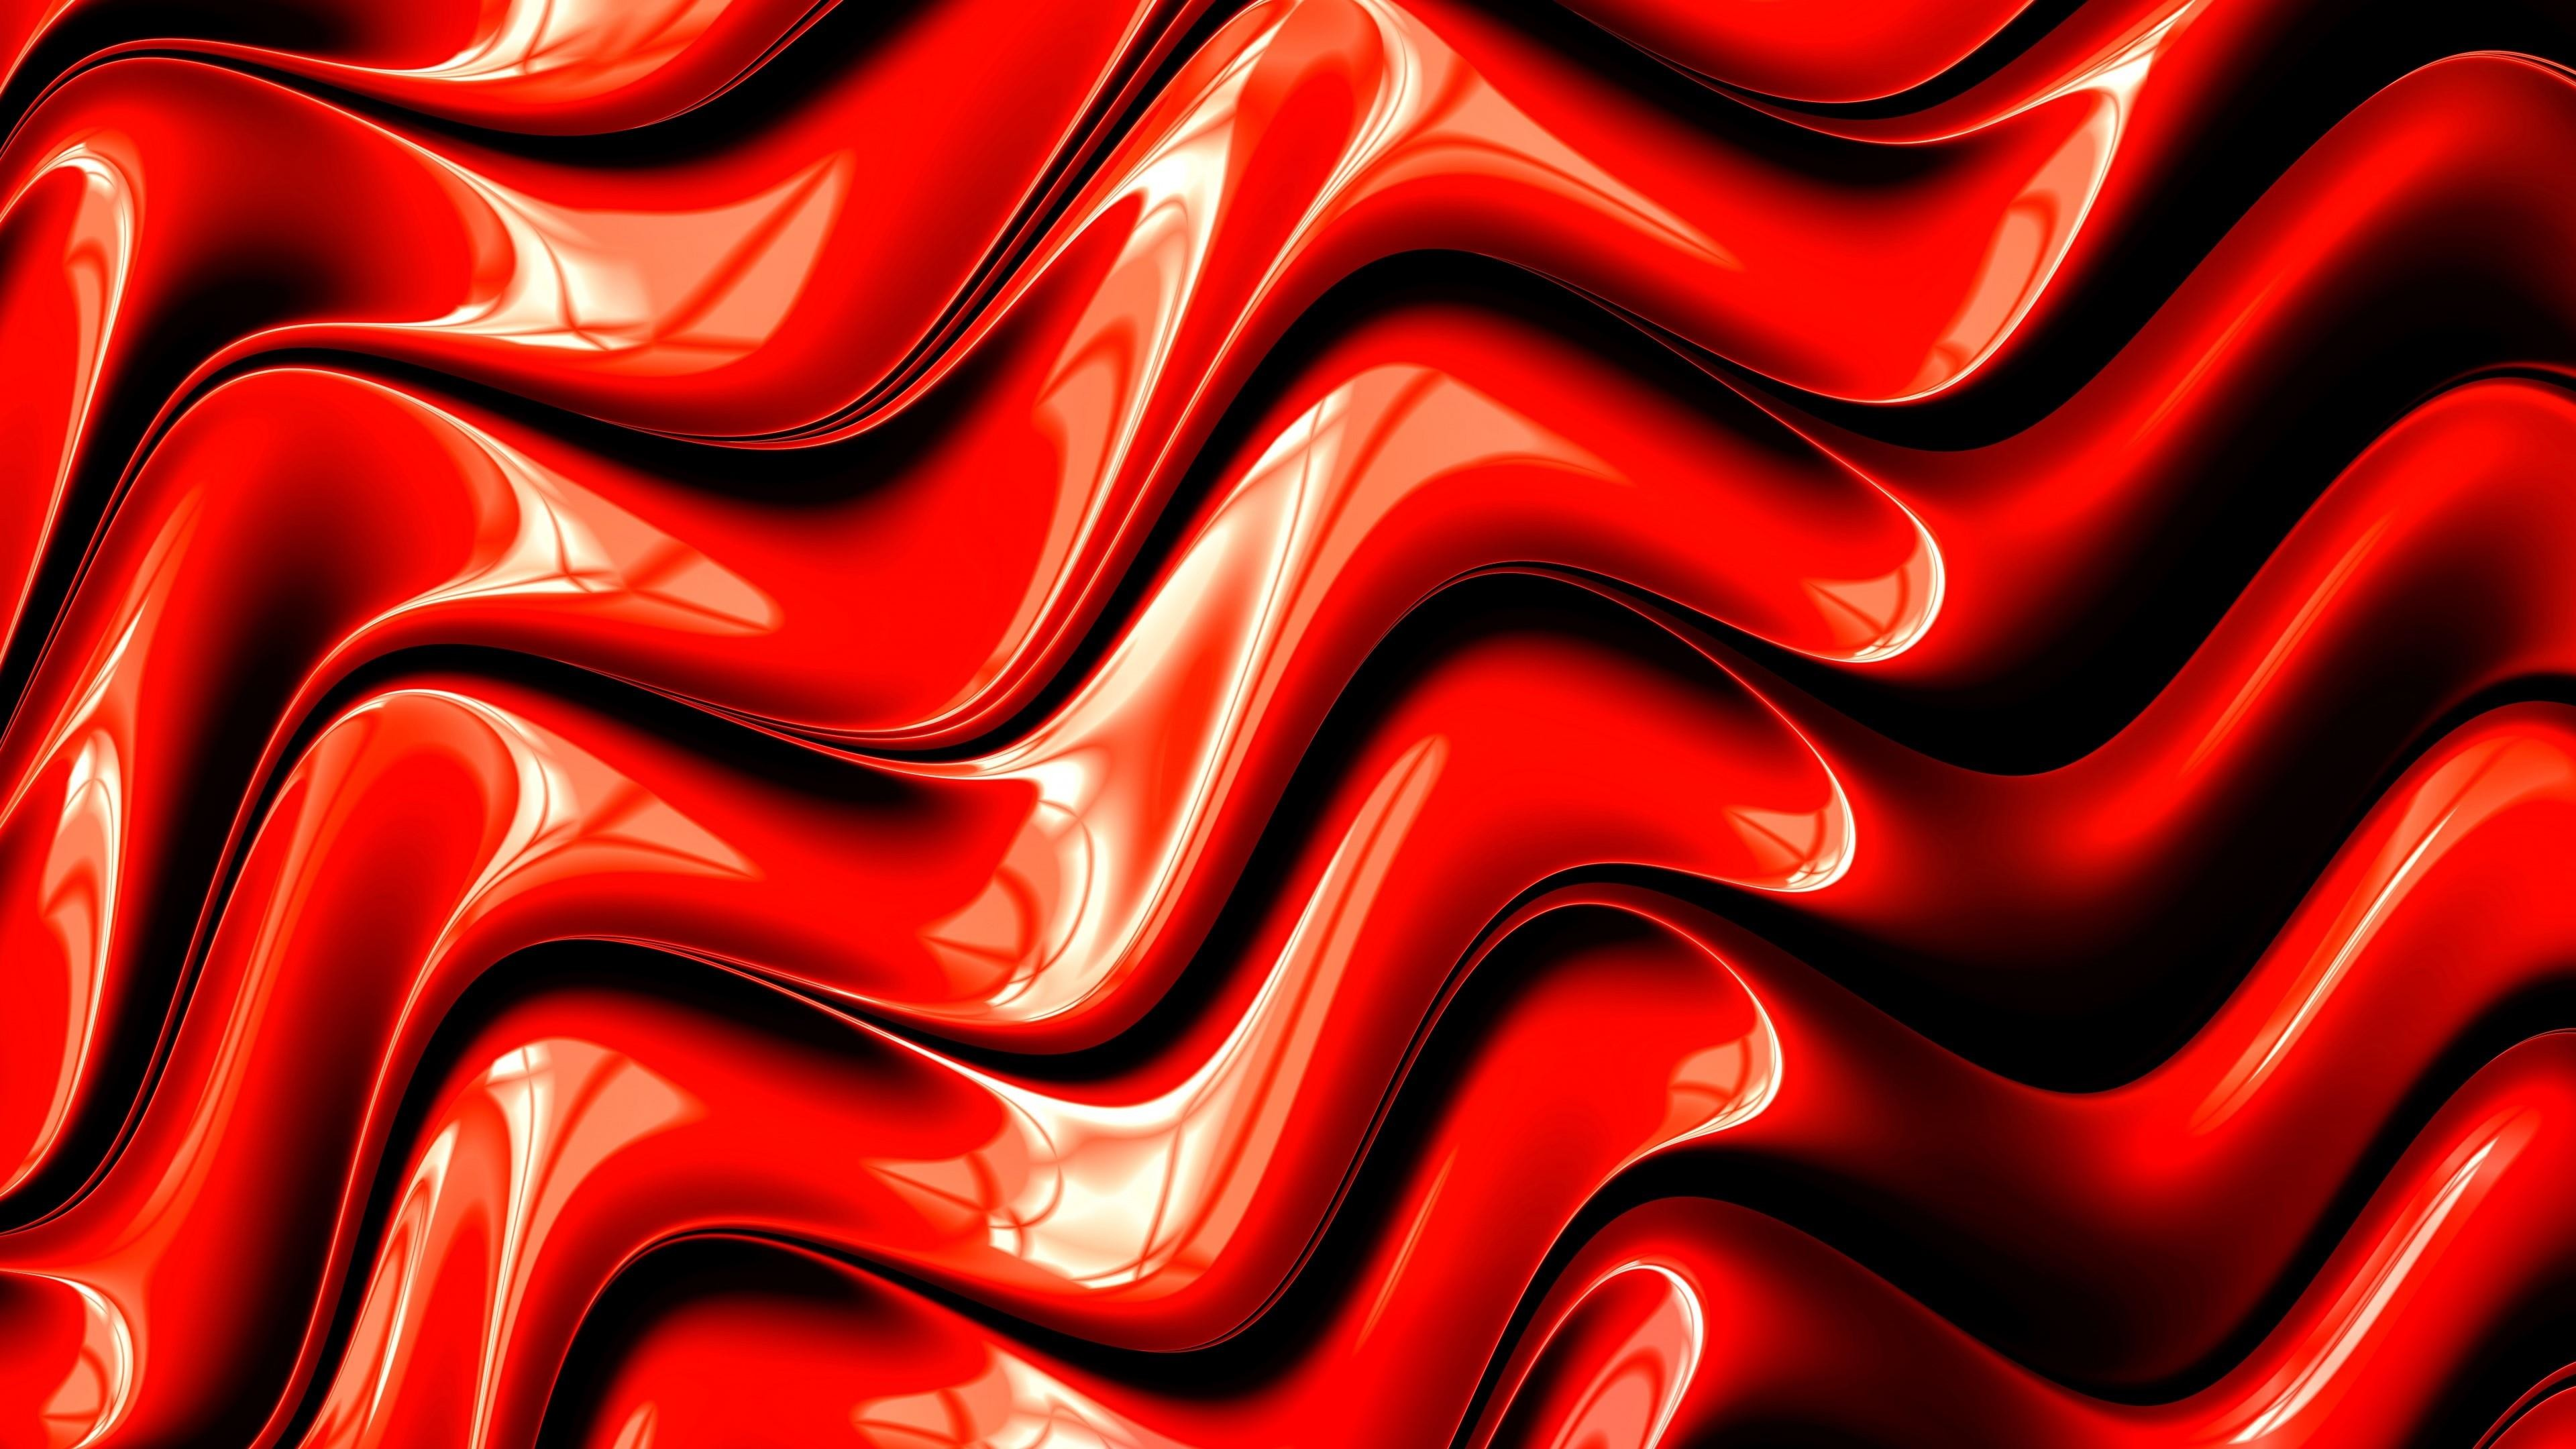 Cool Red 3d Graphic Design Wallpaper ...